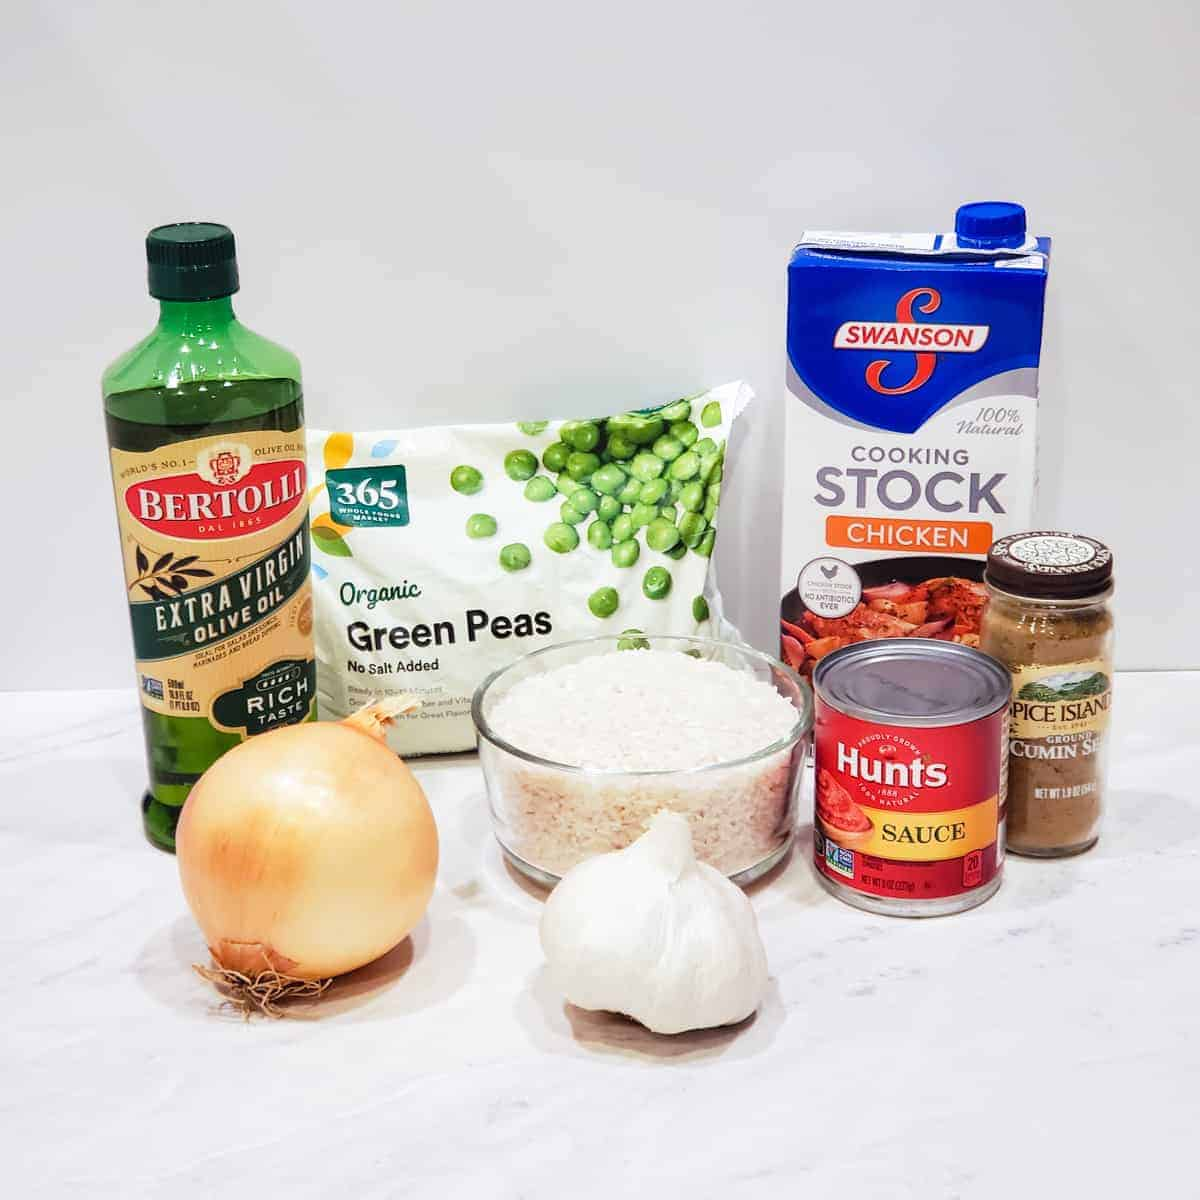 Assortment of ingredients for Instant Pot Spanish rice shown on a counter.